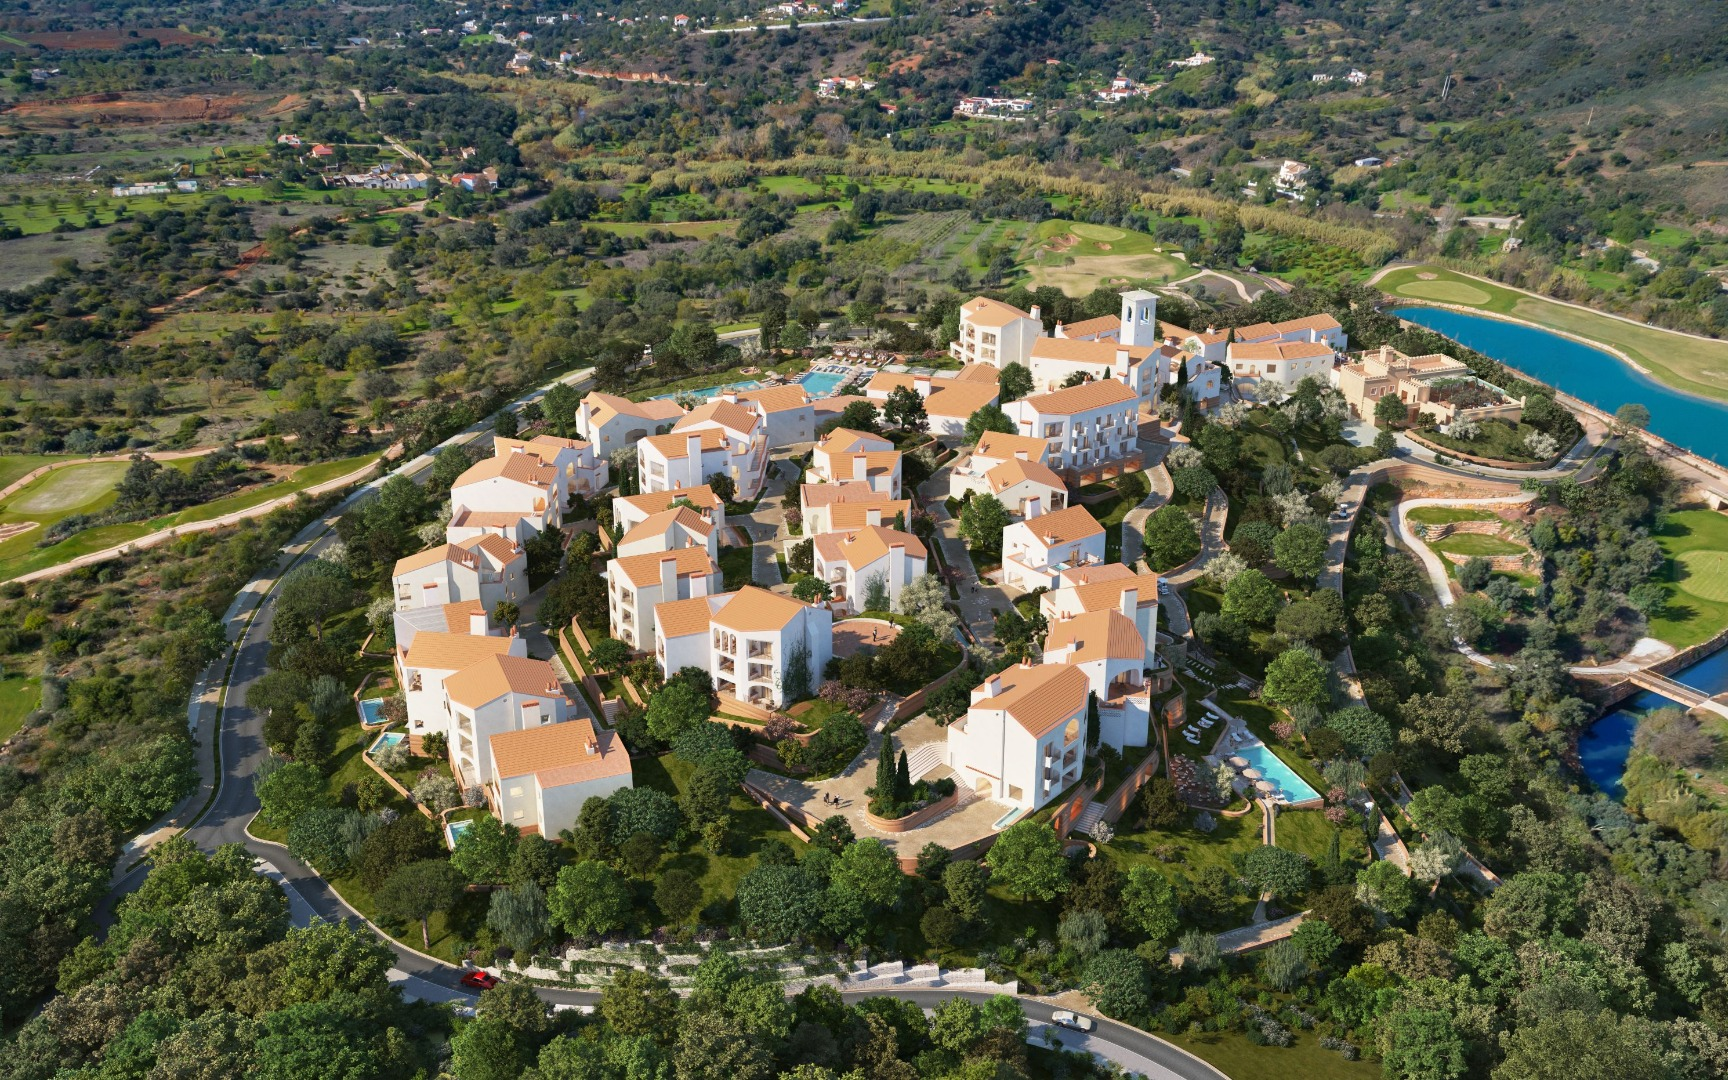 Aerial image of Ombria resort